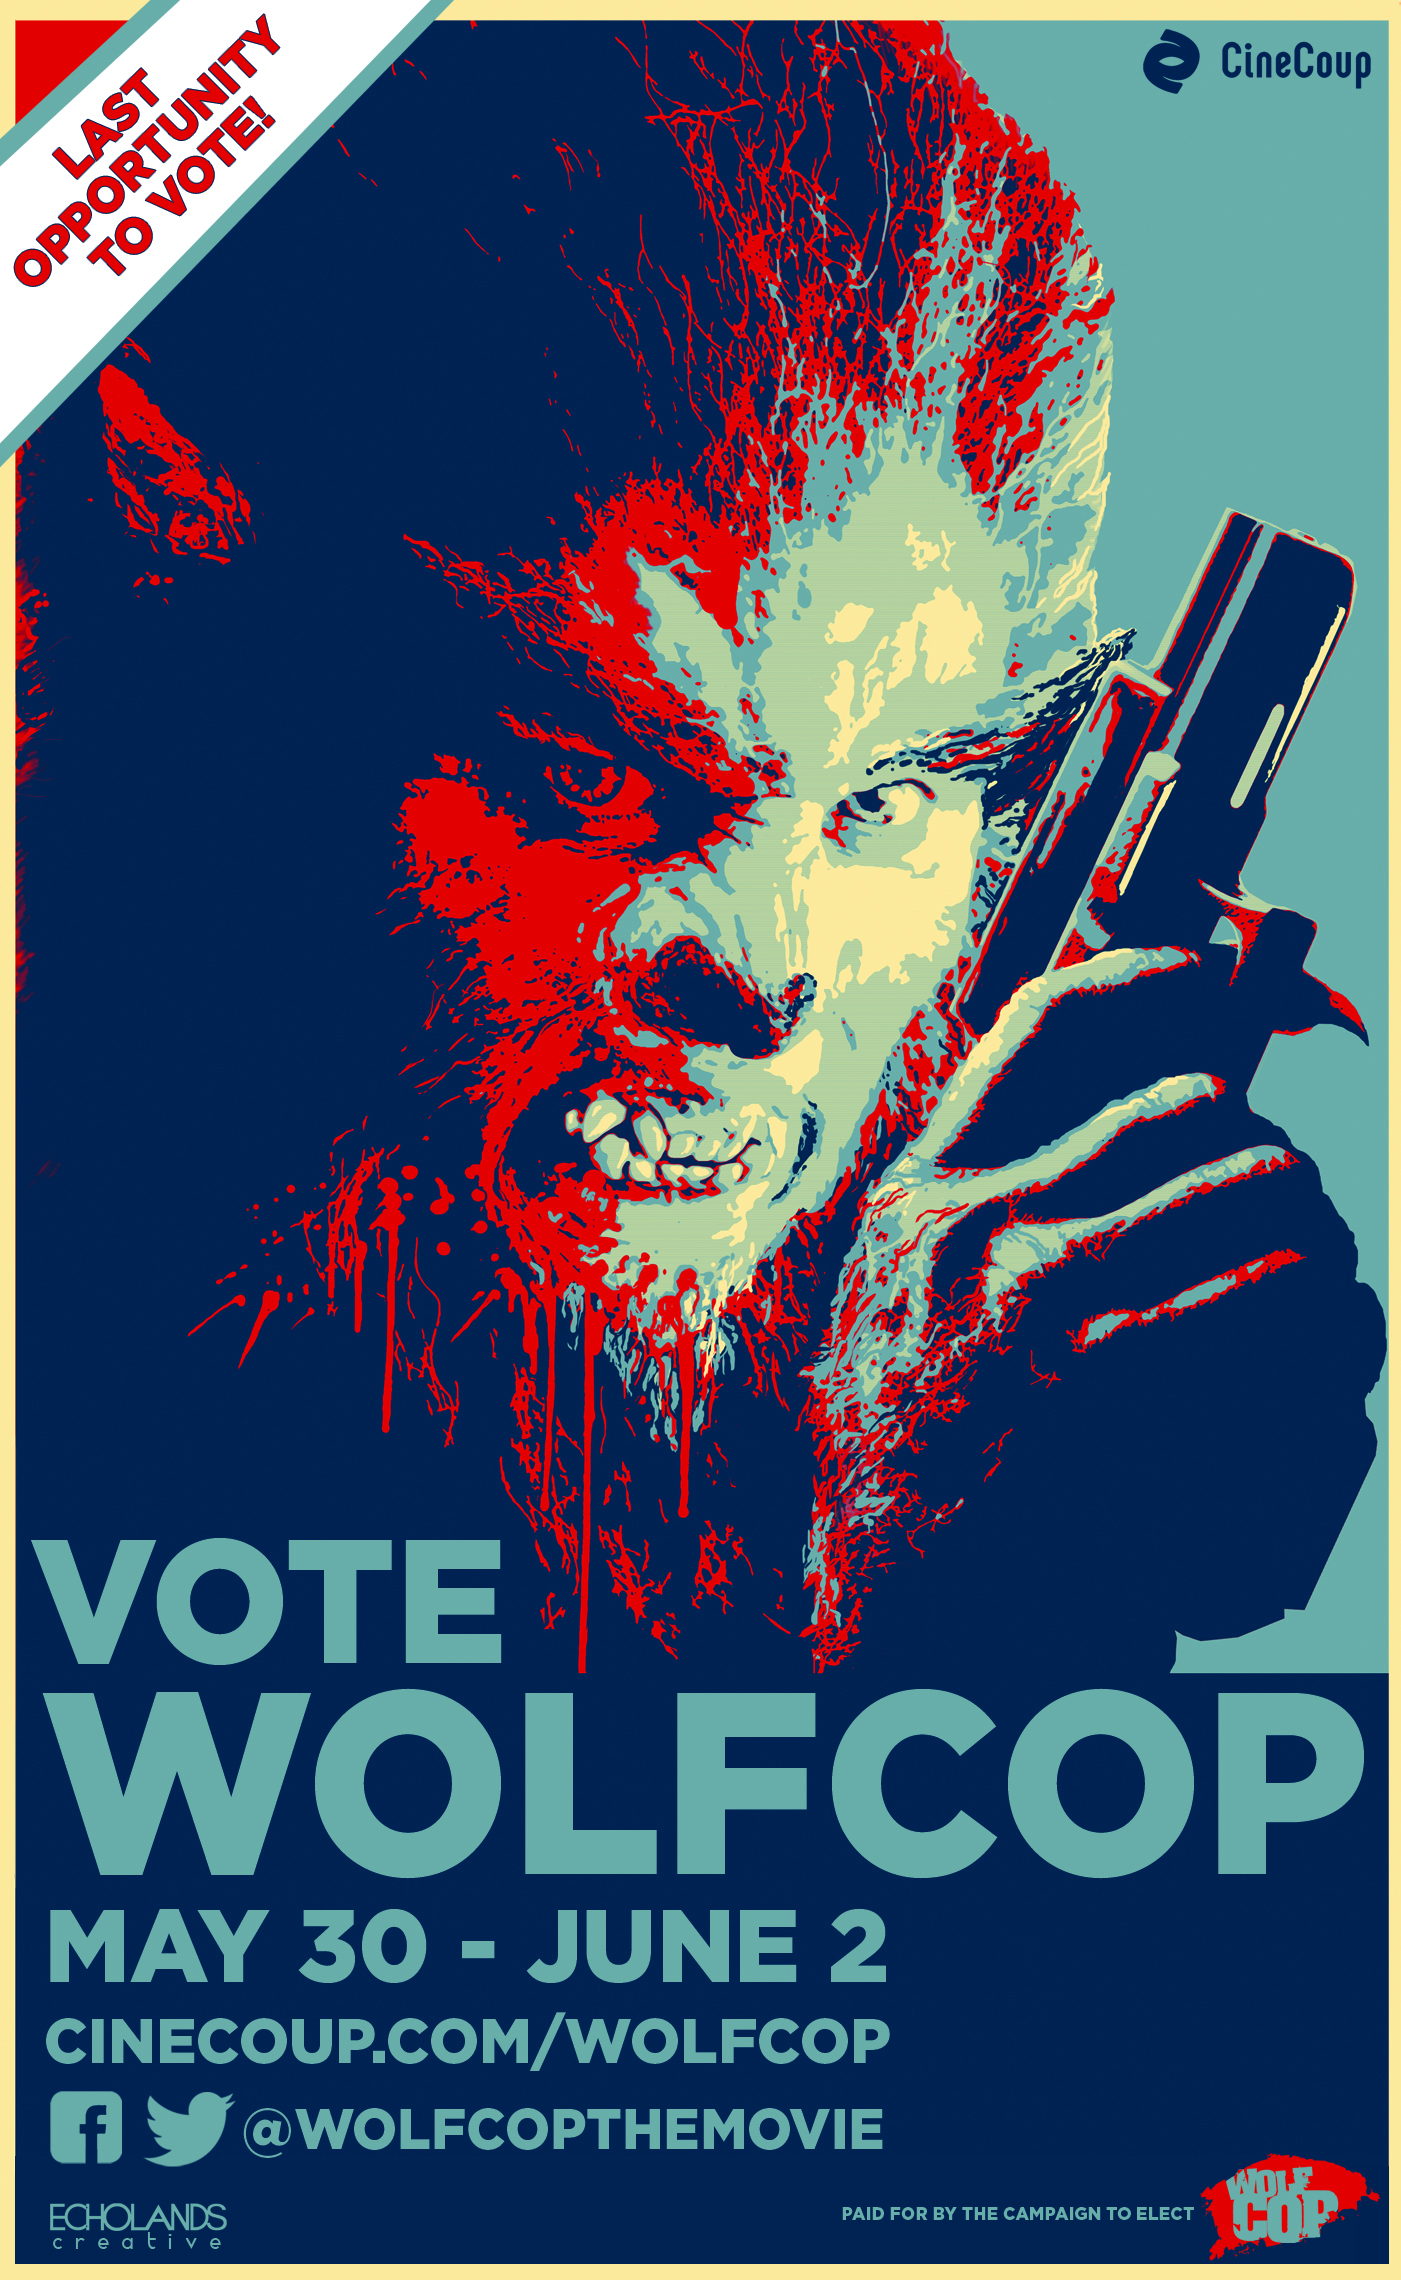 WOLFCOP VOTE Prairie Dog (1)